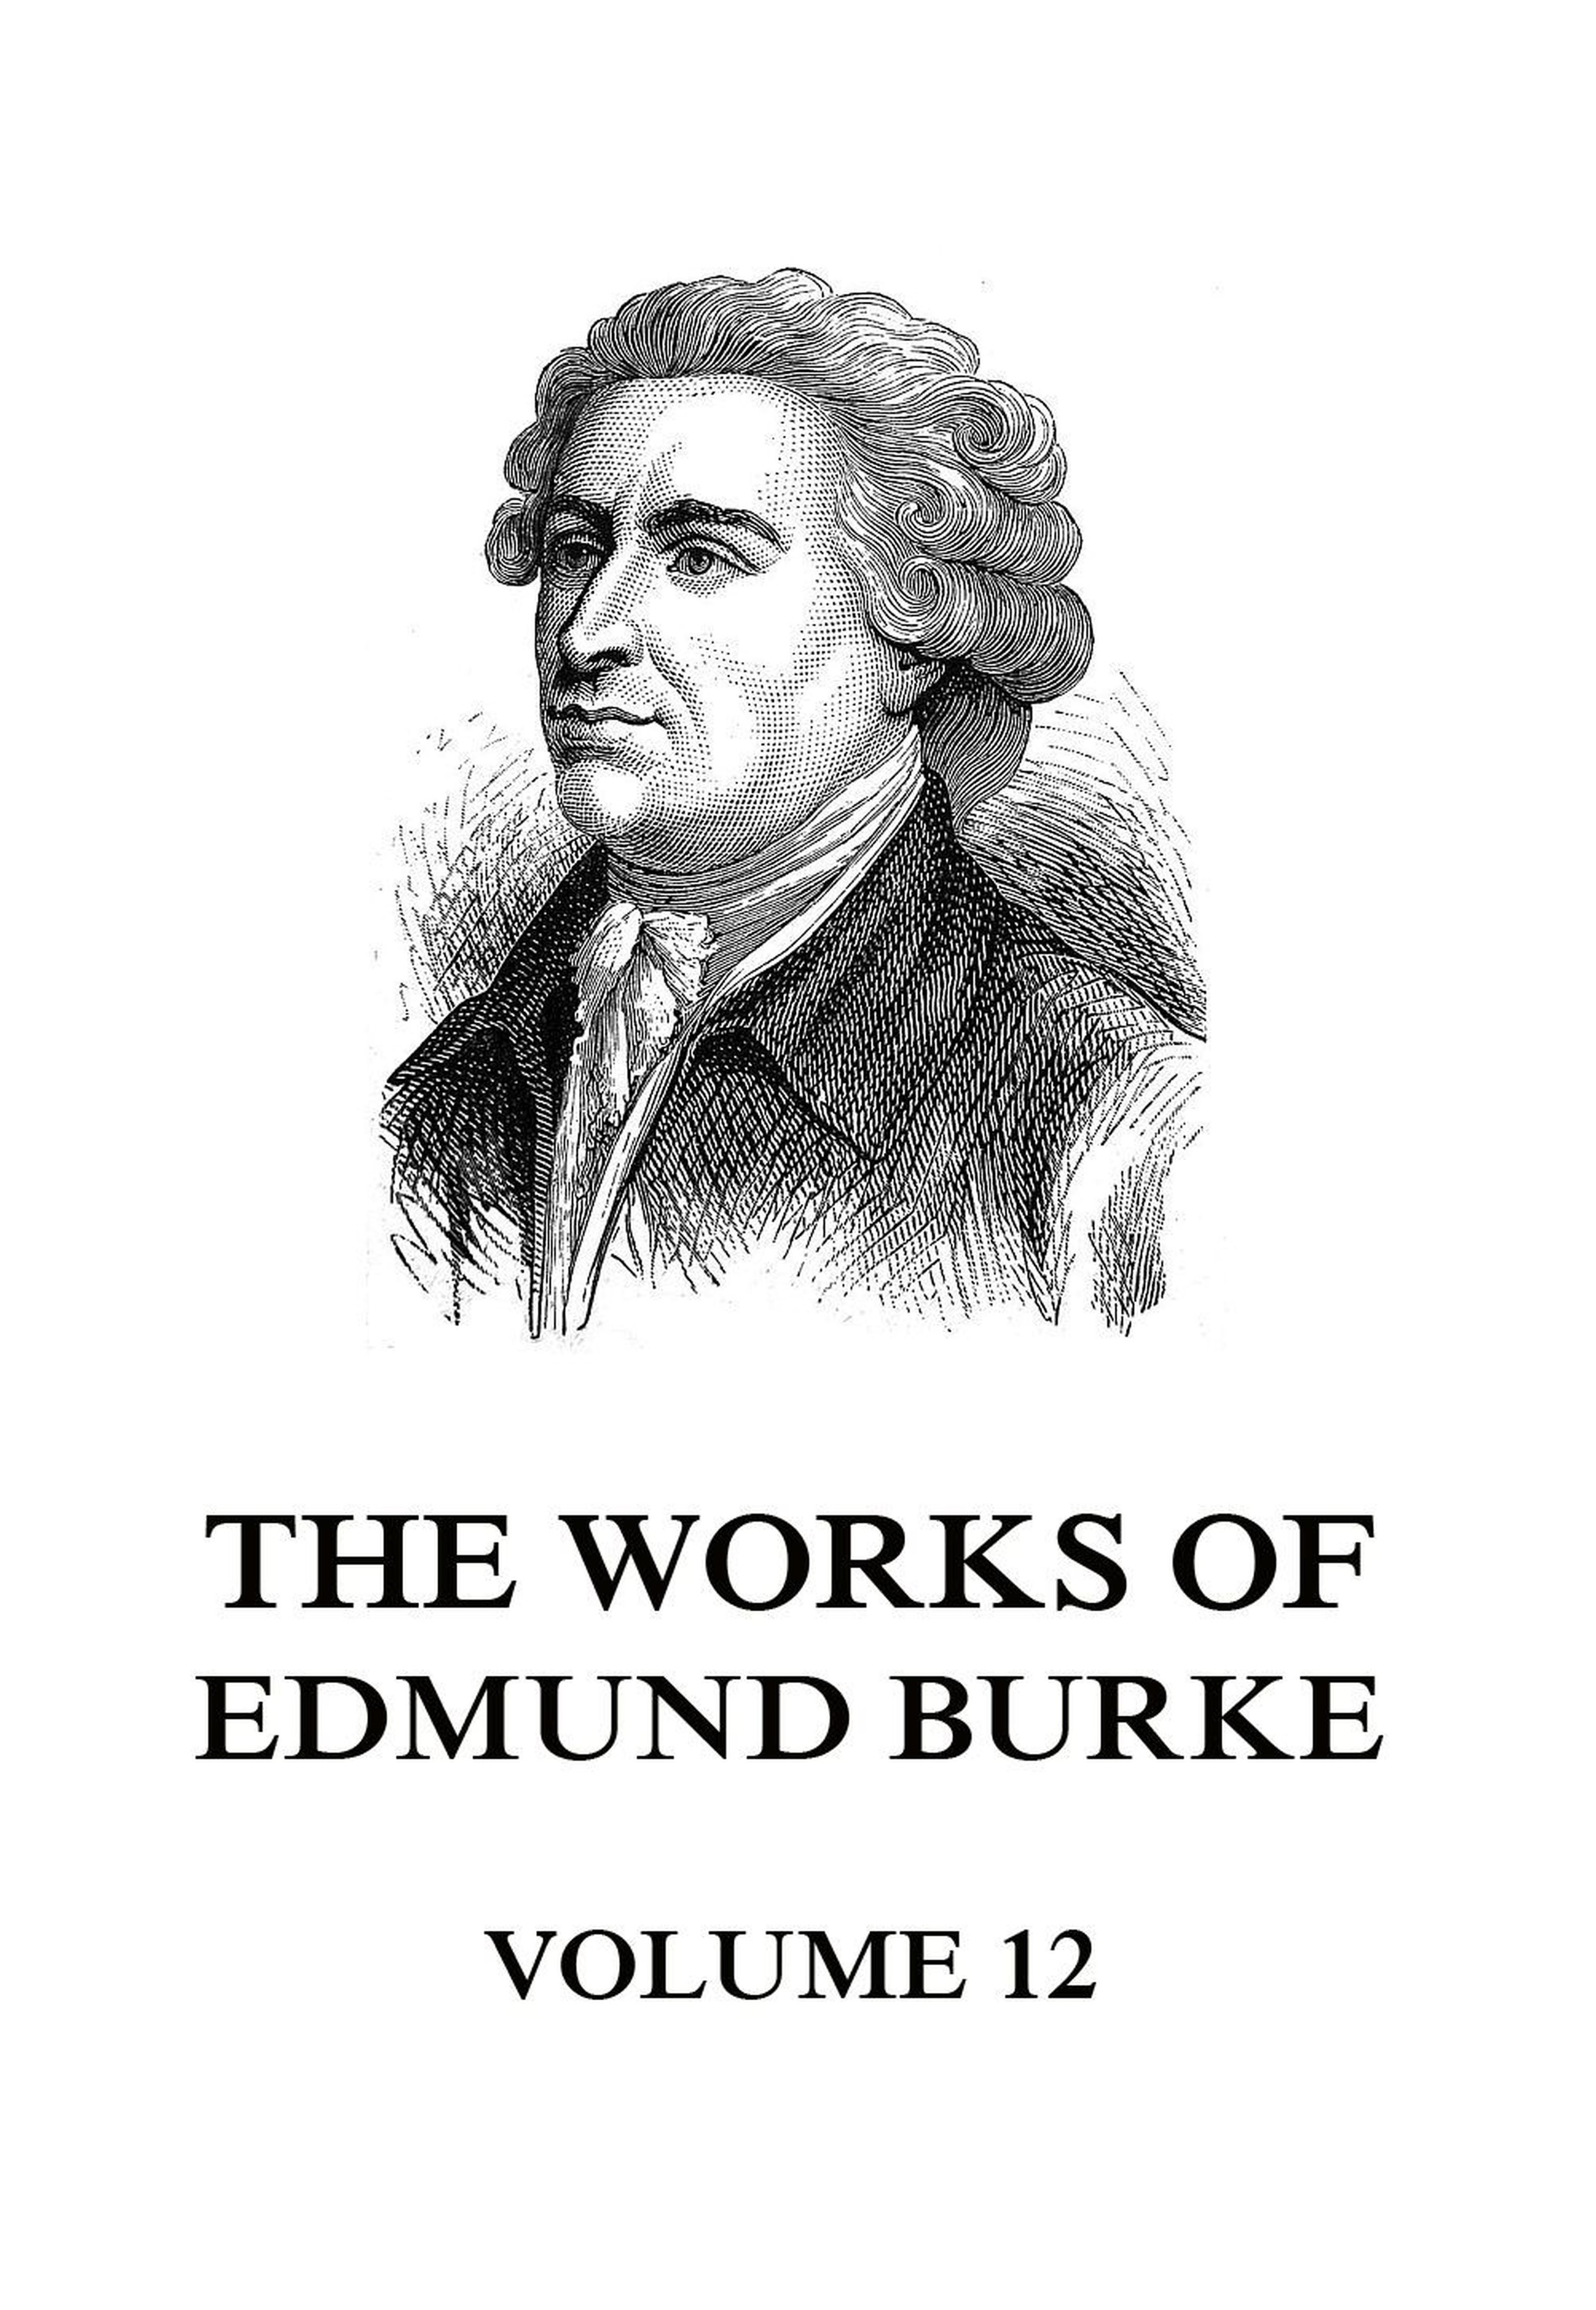 The Works of Edmund Burke Volume 12